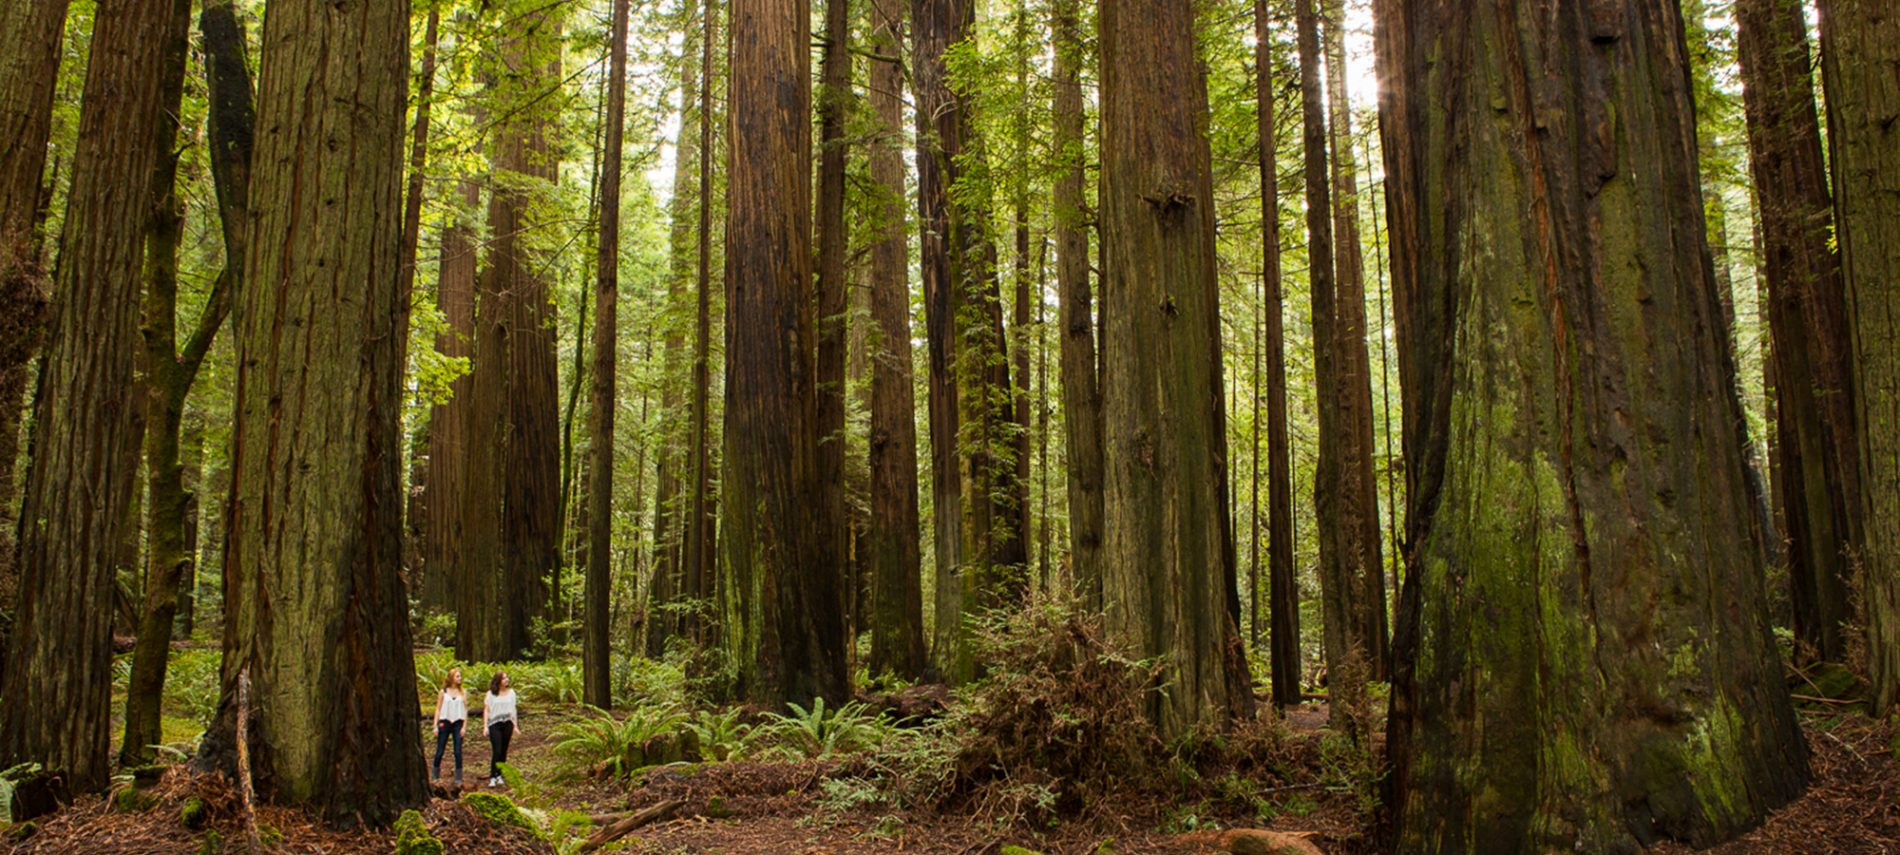 2 girl hikers in white shirts and jeans overshadowed by grove of huge redwood trees